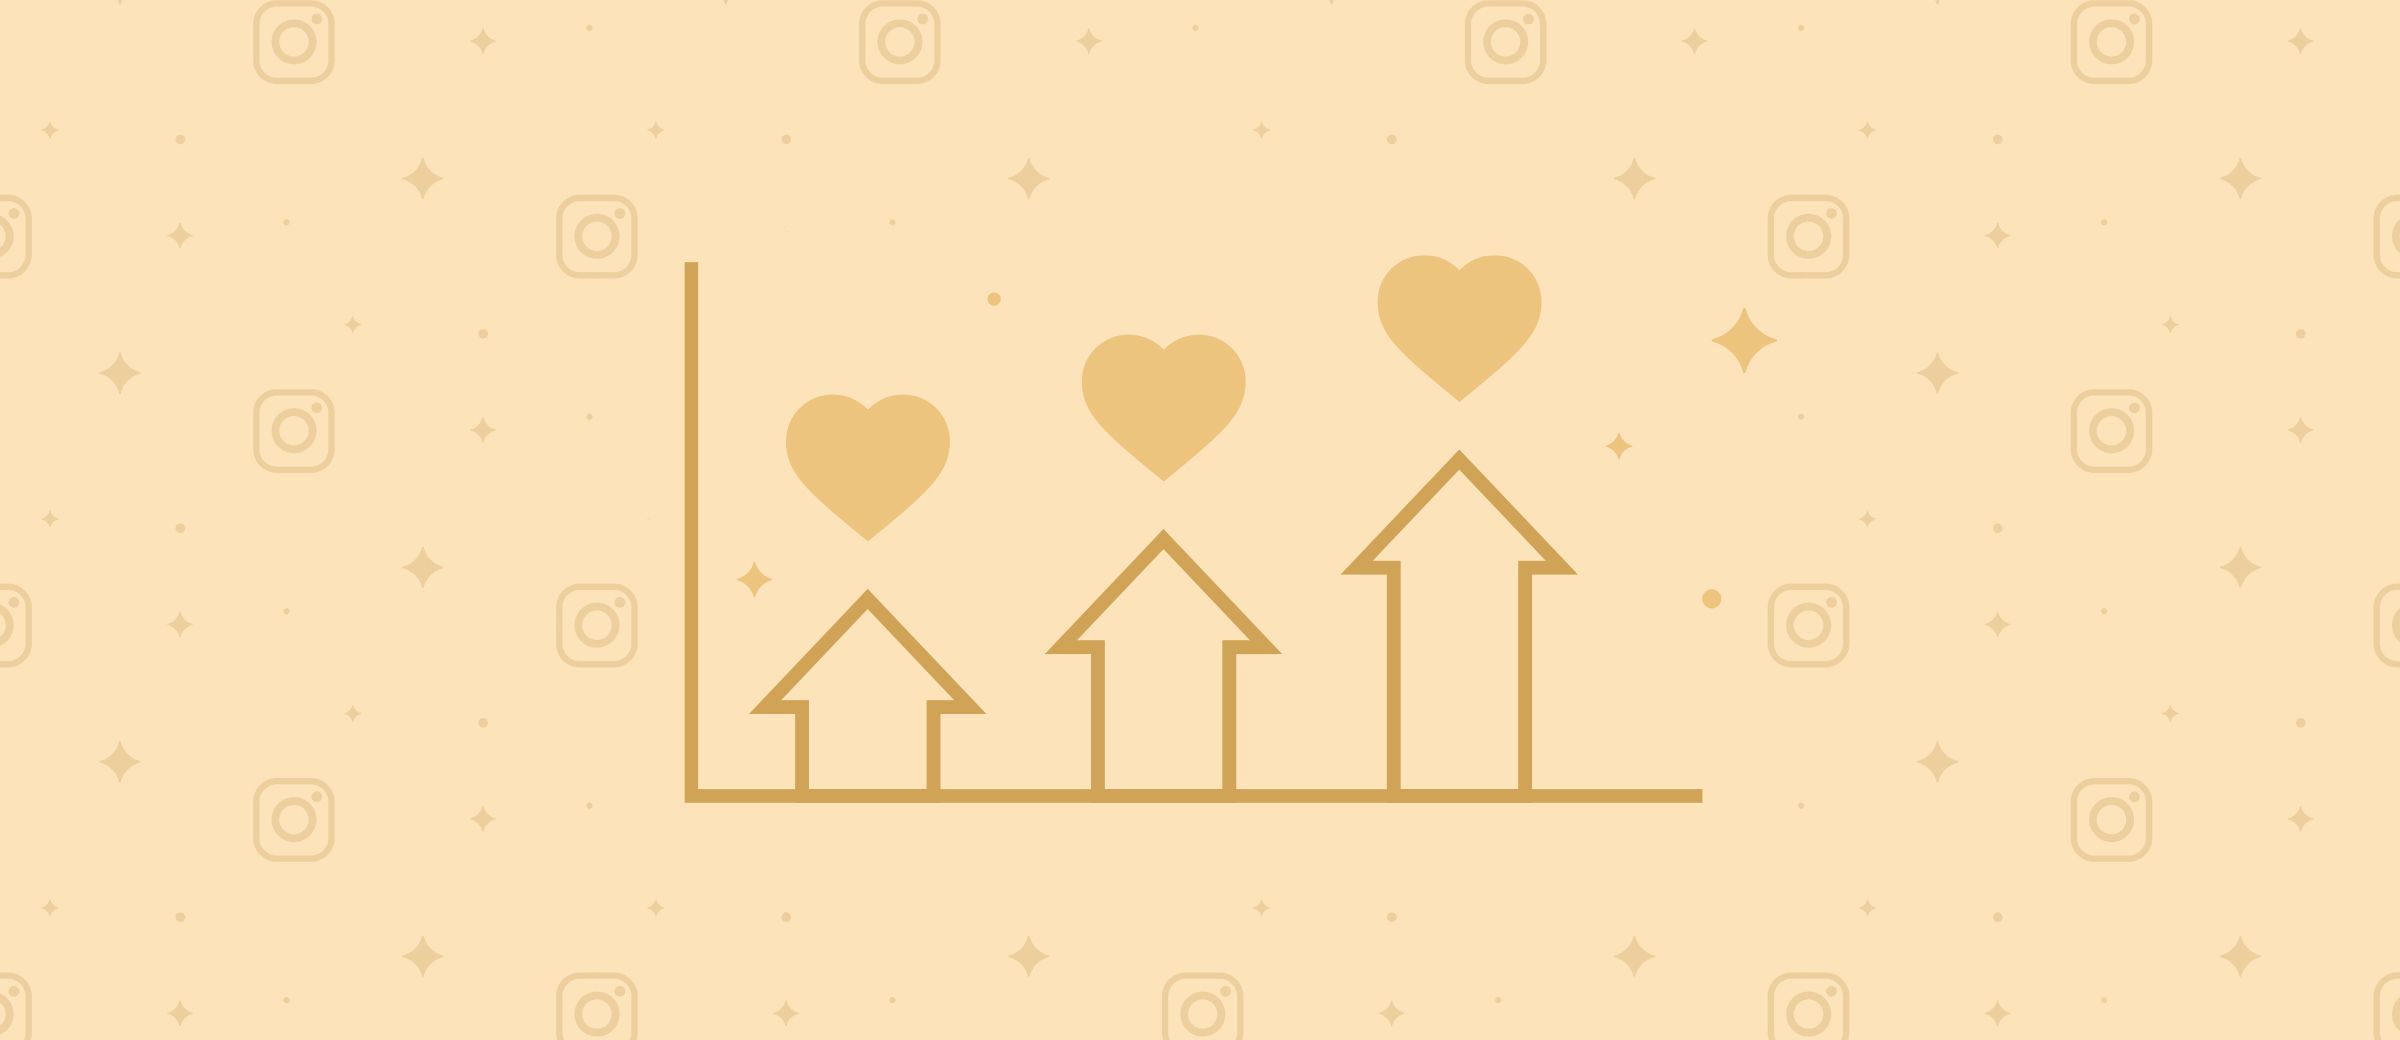 Instagram Engagement Rates: Do More Followers Lead to Better Engagement?, by tareen-alam